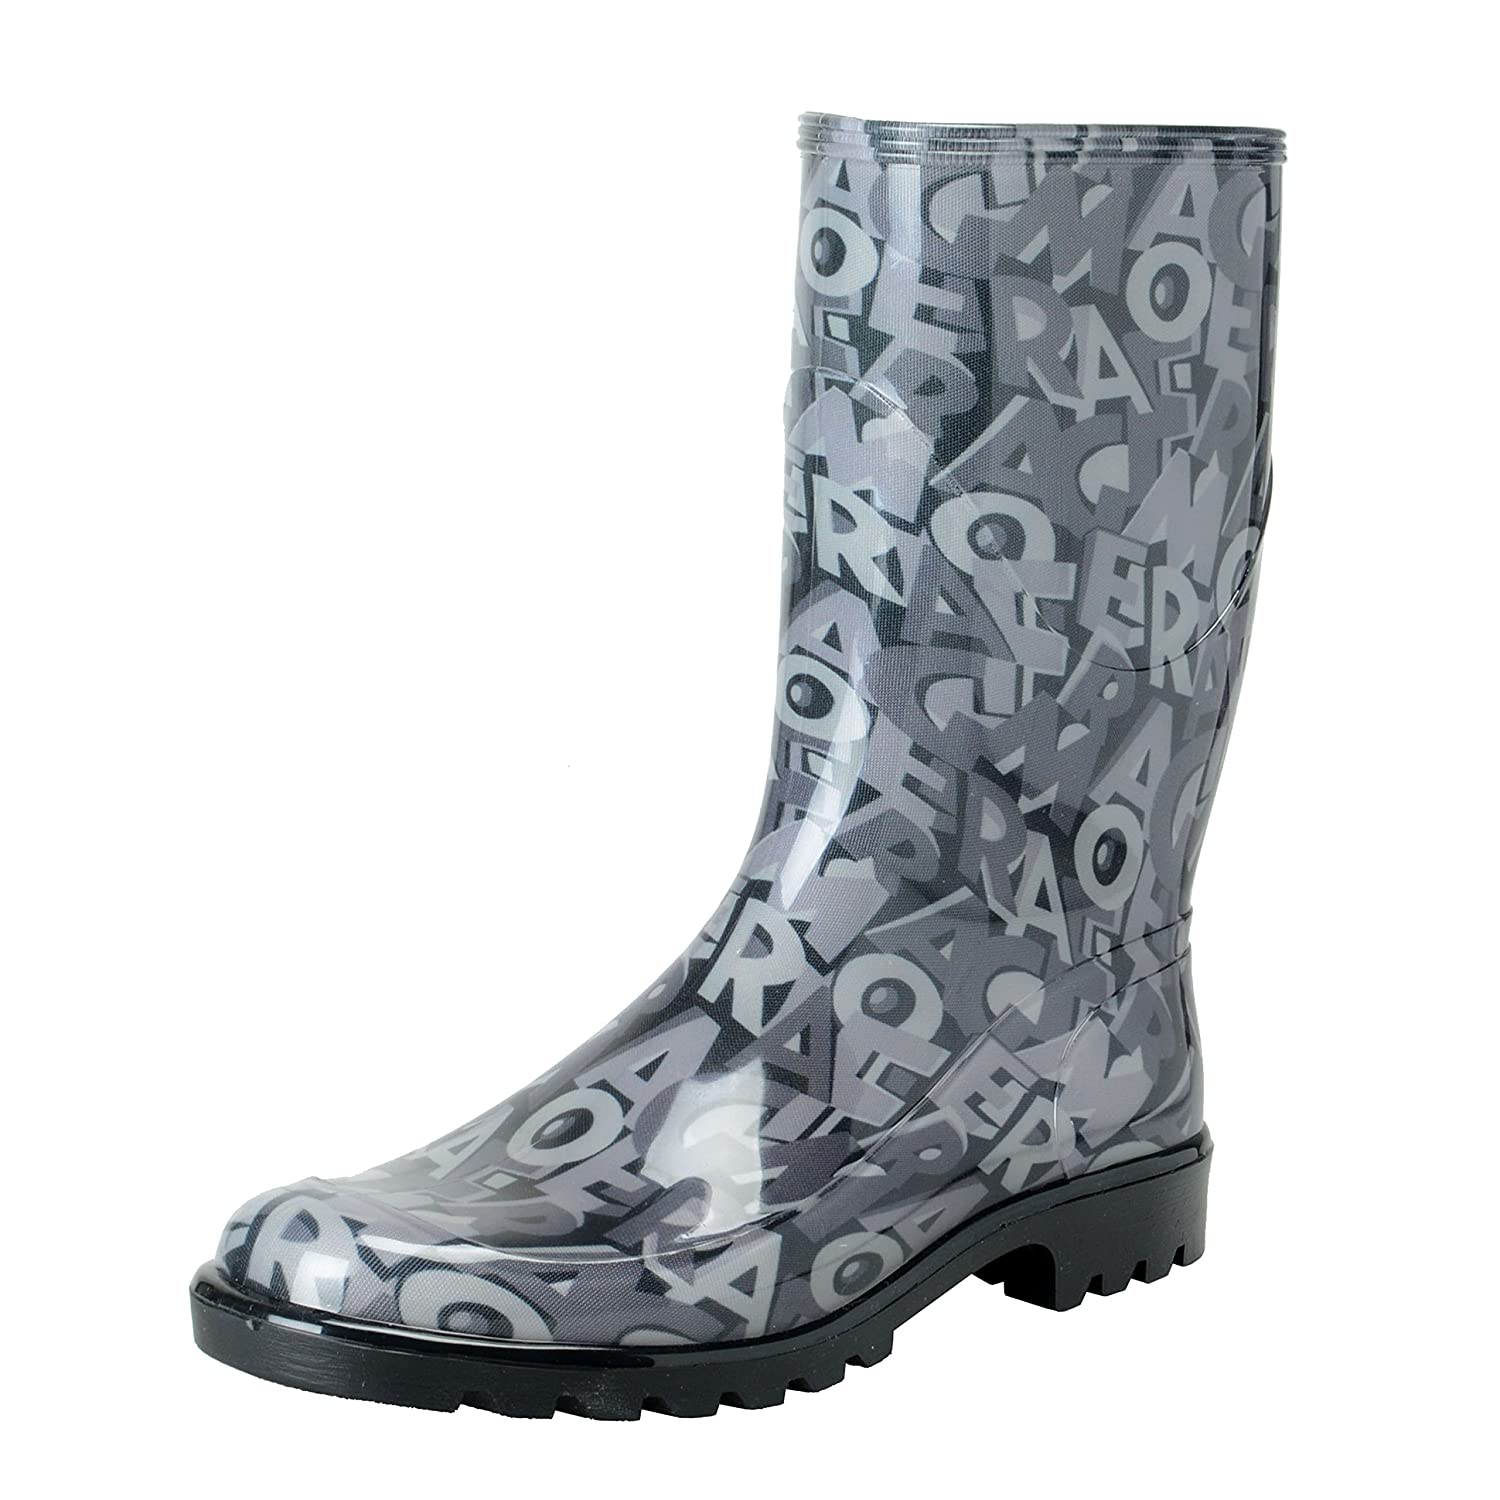 Salvatore Ferragamo Women's FARABEL Logo Print Rainboots Shoes US 10 IT 40 Shoes-2959-4